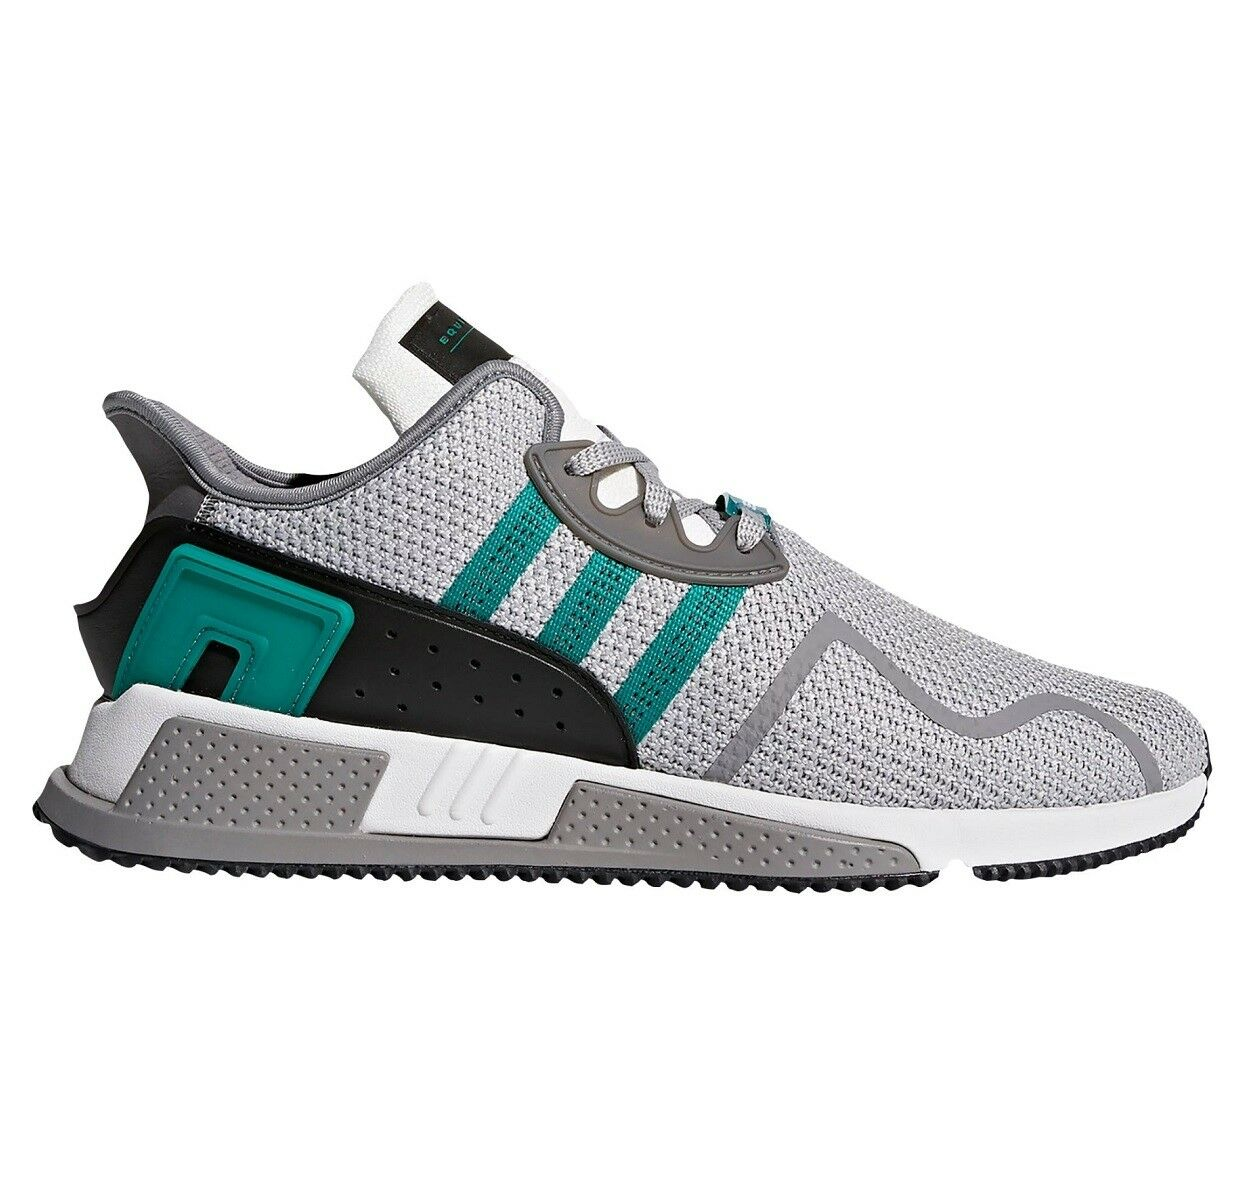 Adidas EQT Cushion ADV Mens AH2232 Grey Sub Green White Running Shoes Size 9